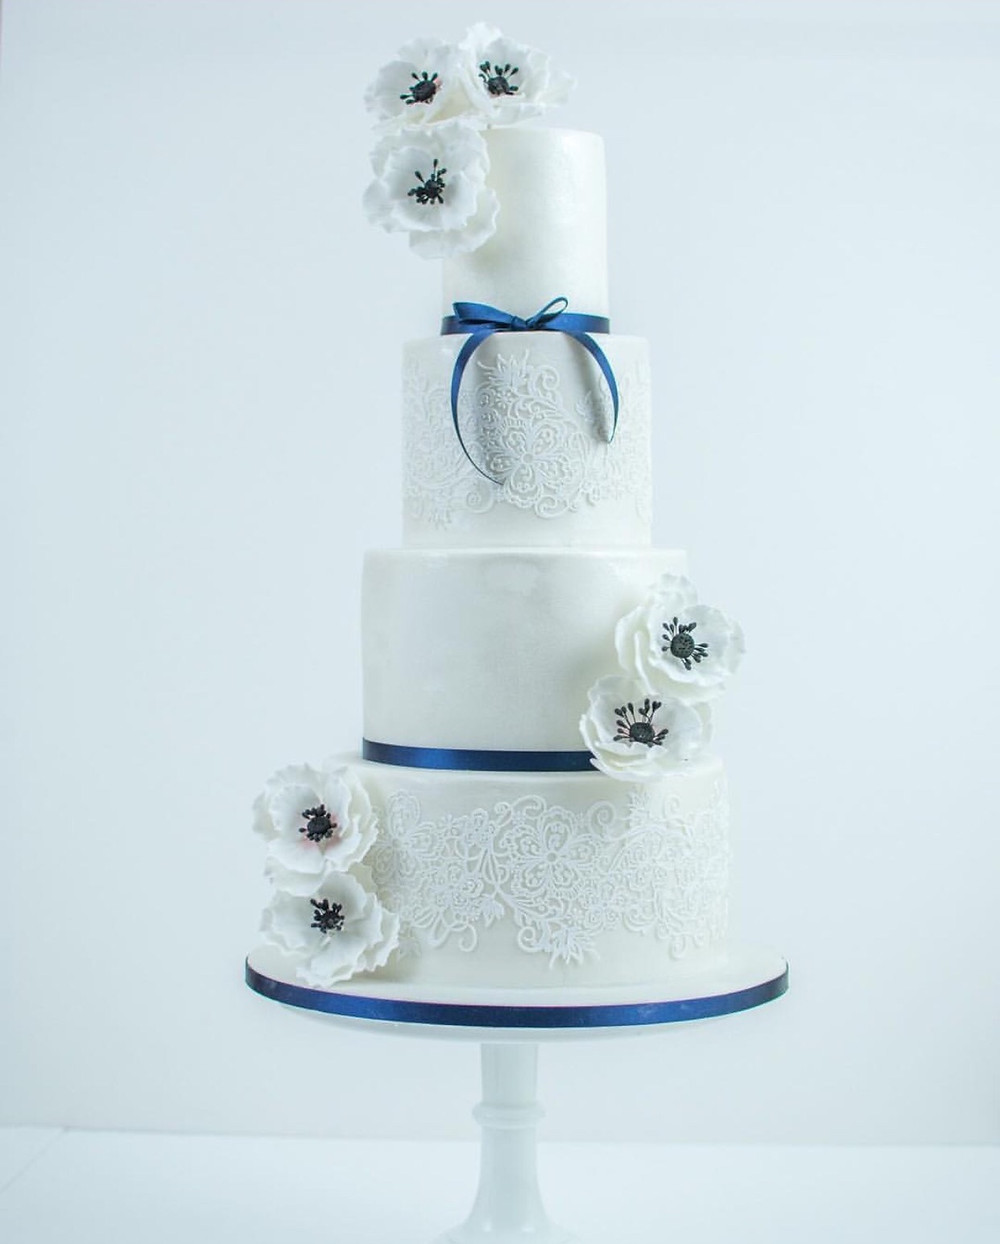 Wedding cake with blue accents